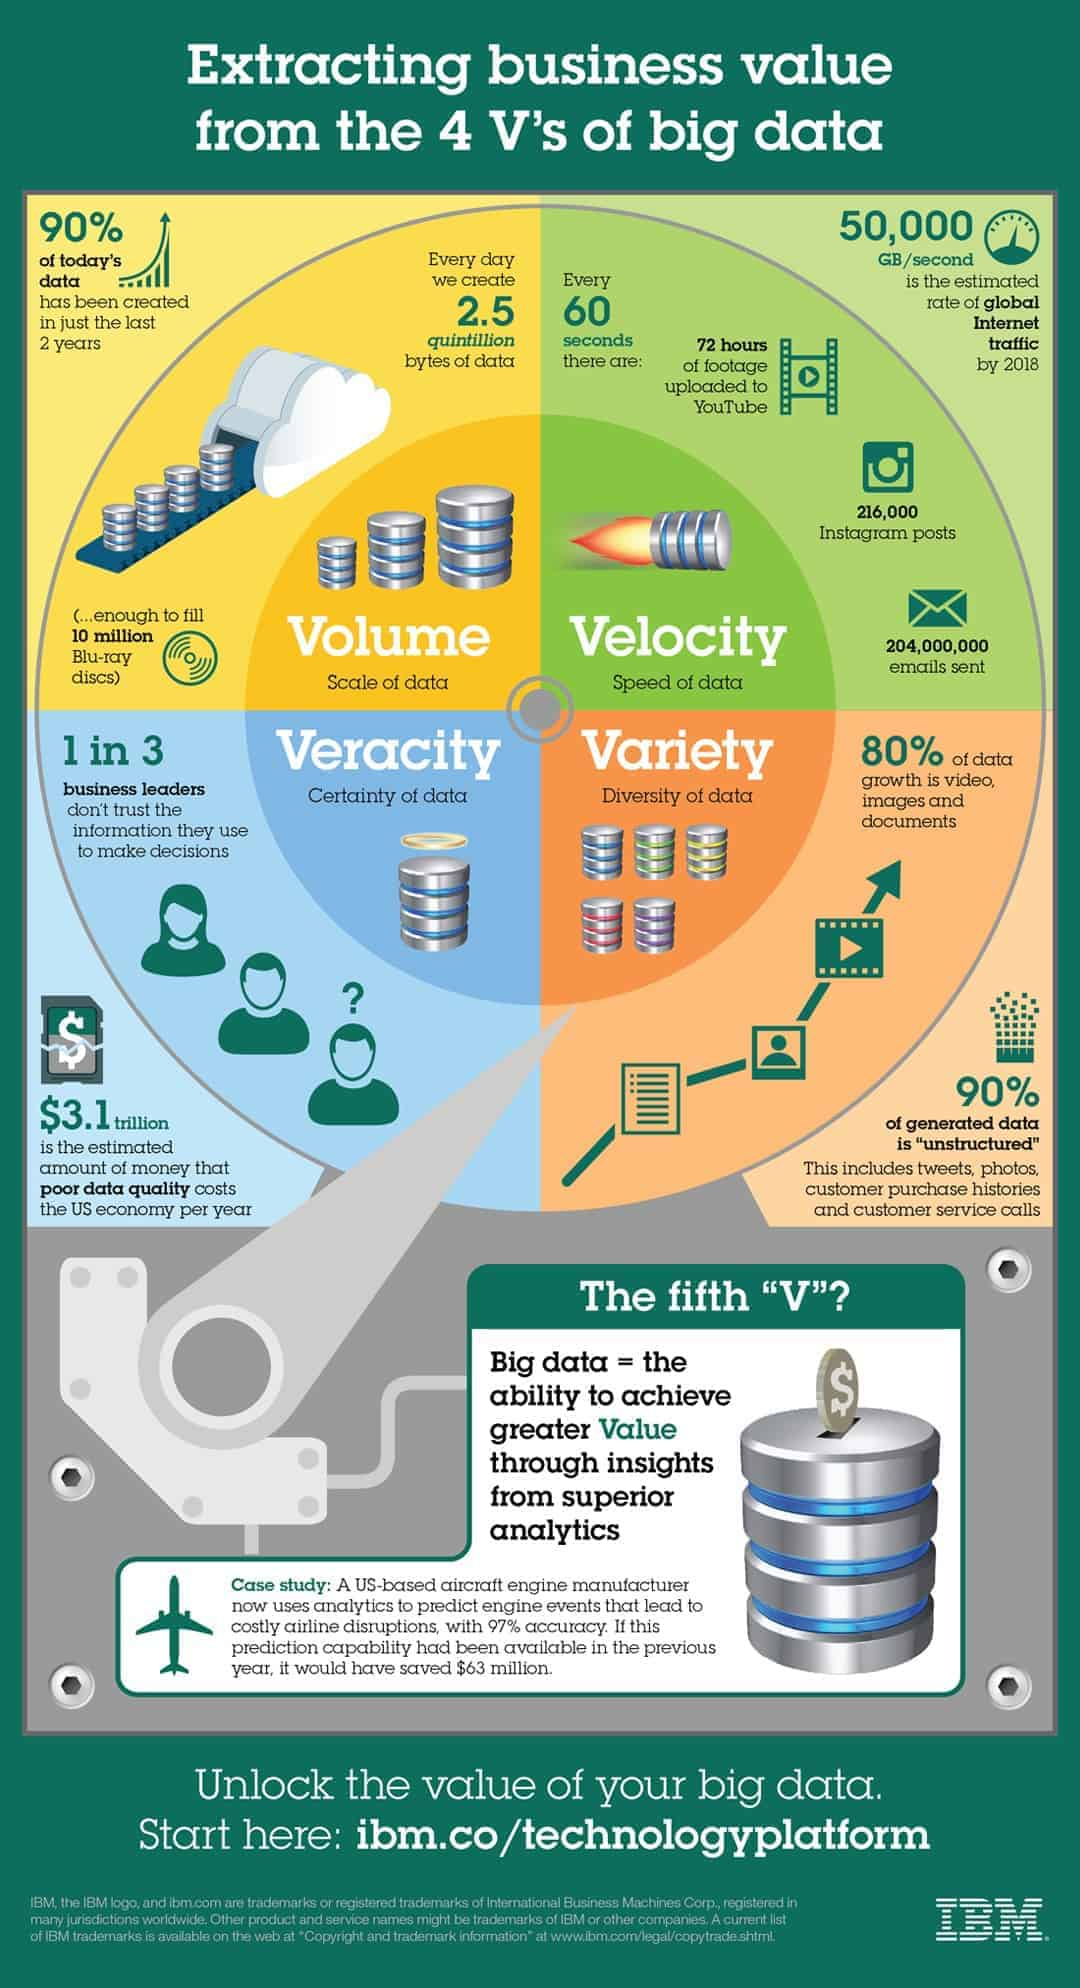 IDM Big Data Vs Infografik Volume, Variety, Velocity, Variety